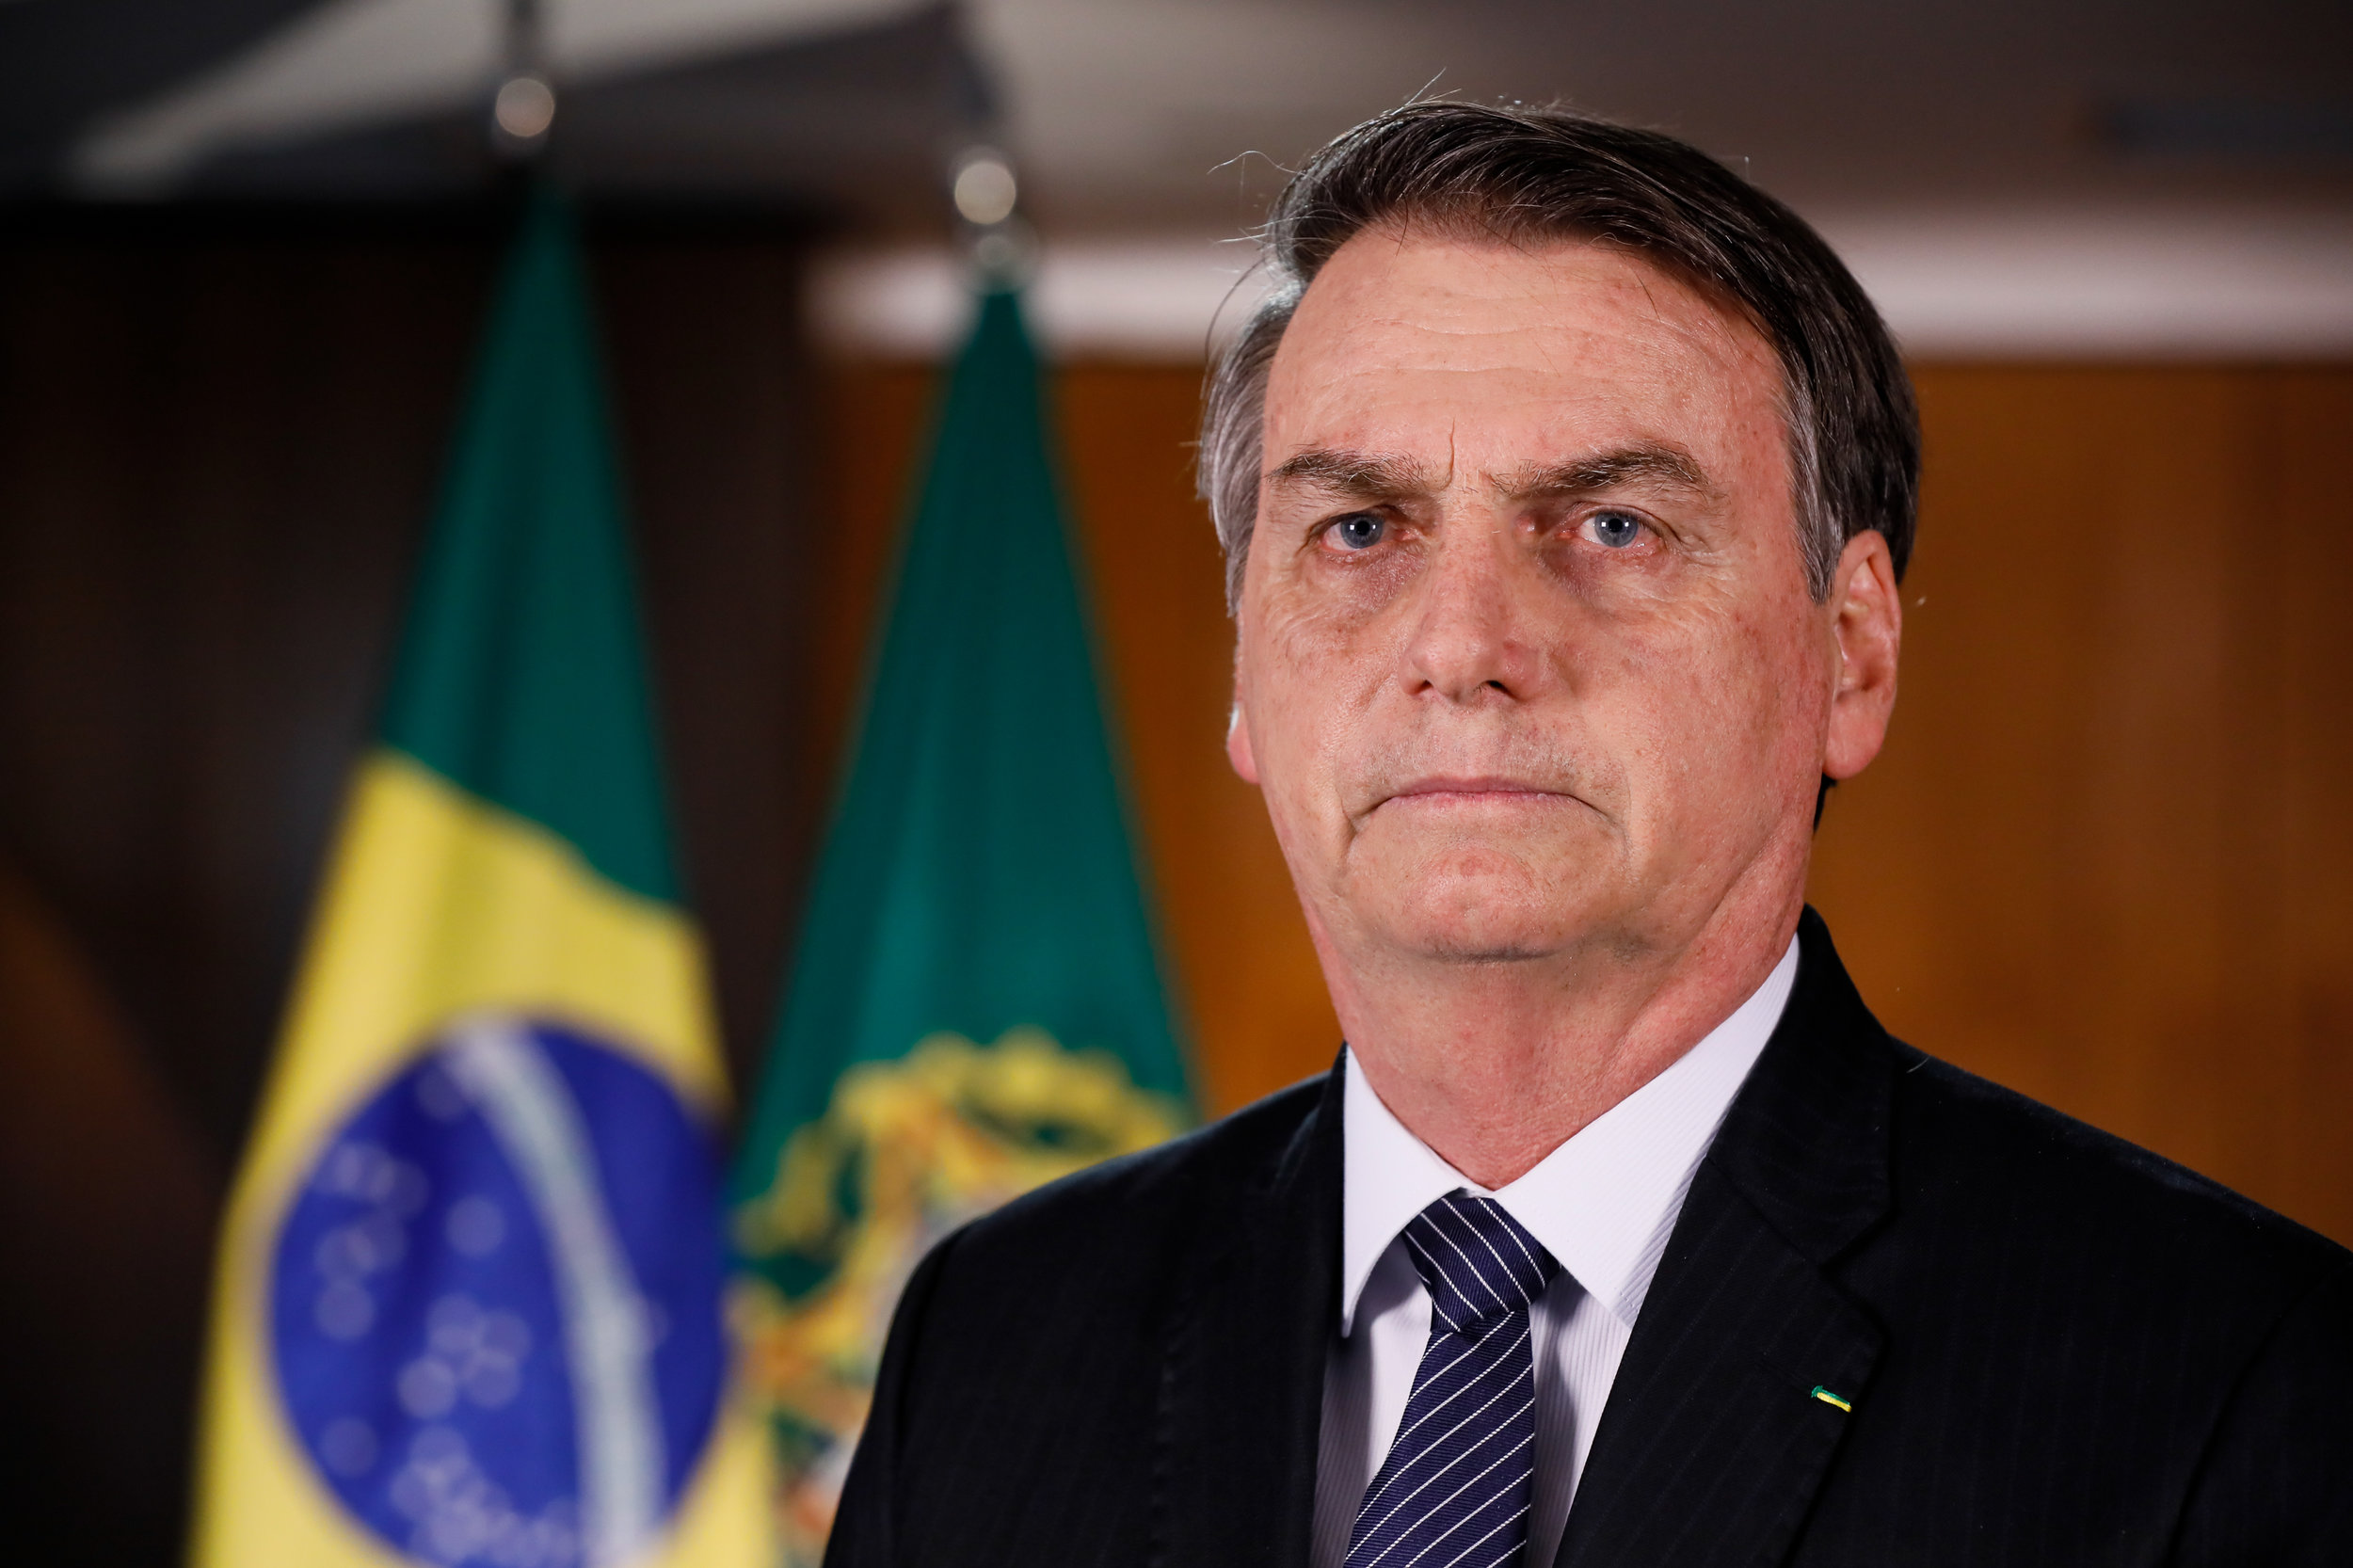 Jair Bolsonaro, Brazil's President; Photo courtesy of the Wikimedia Commons